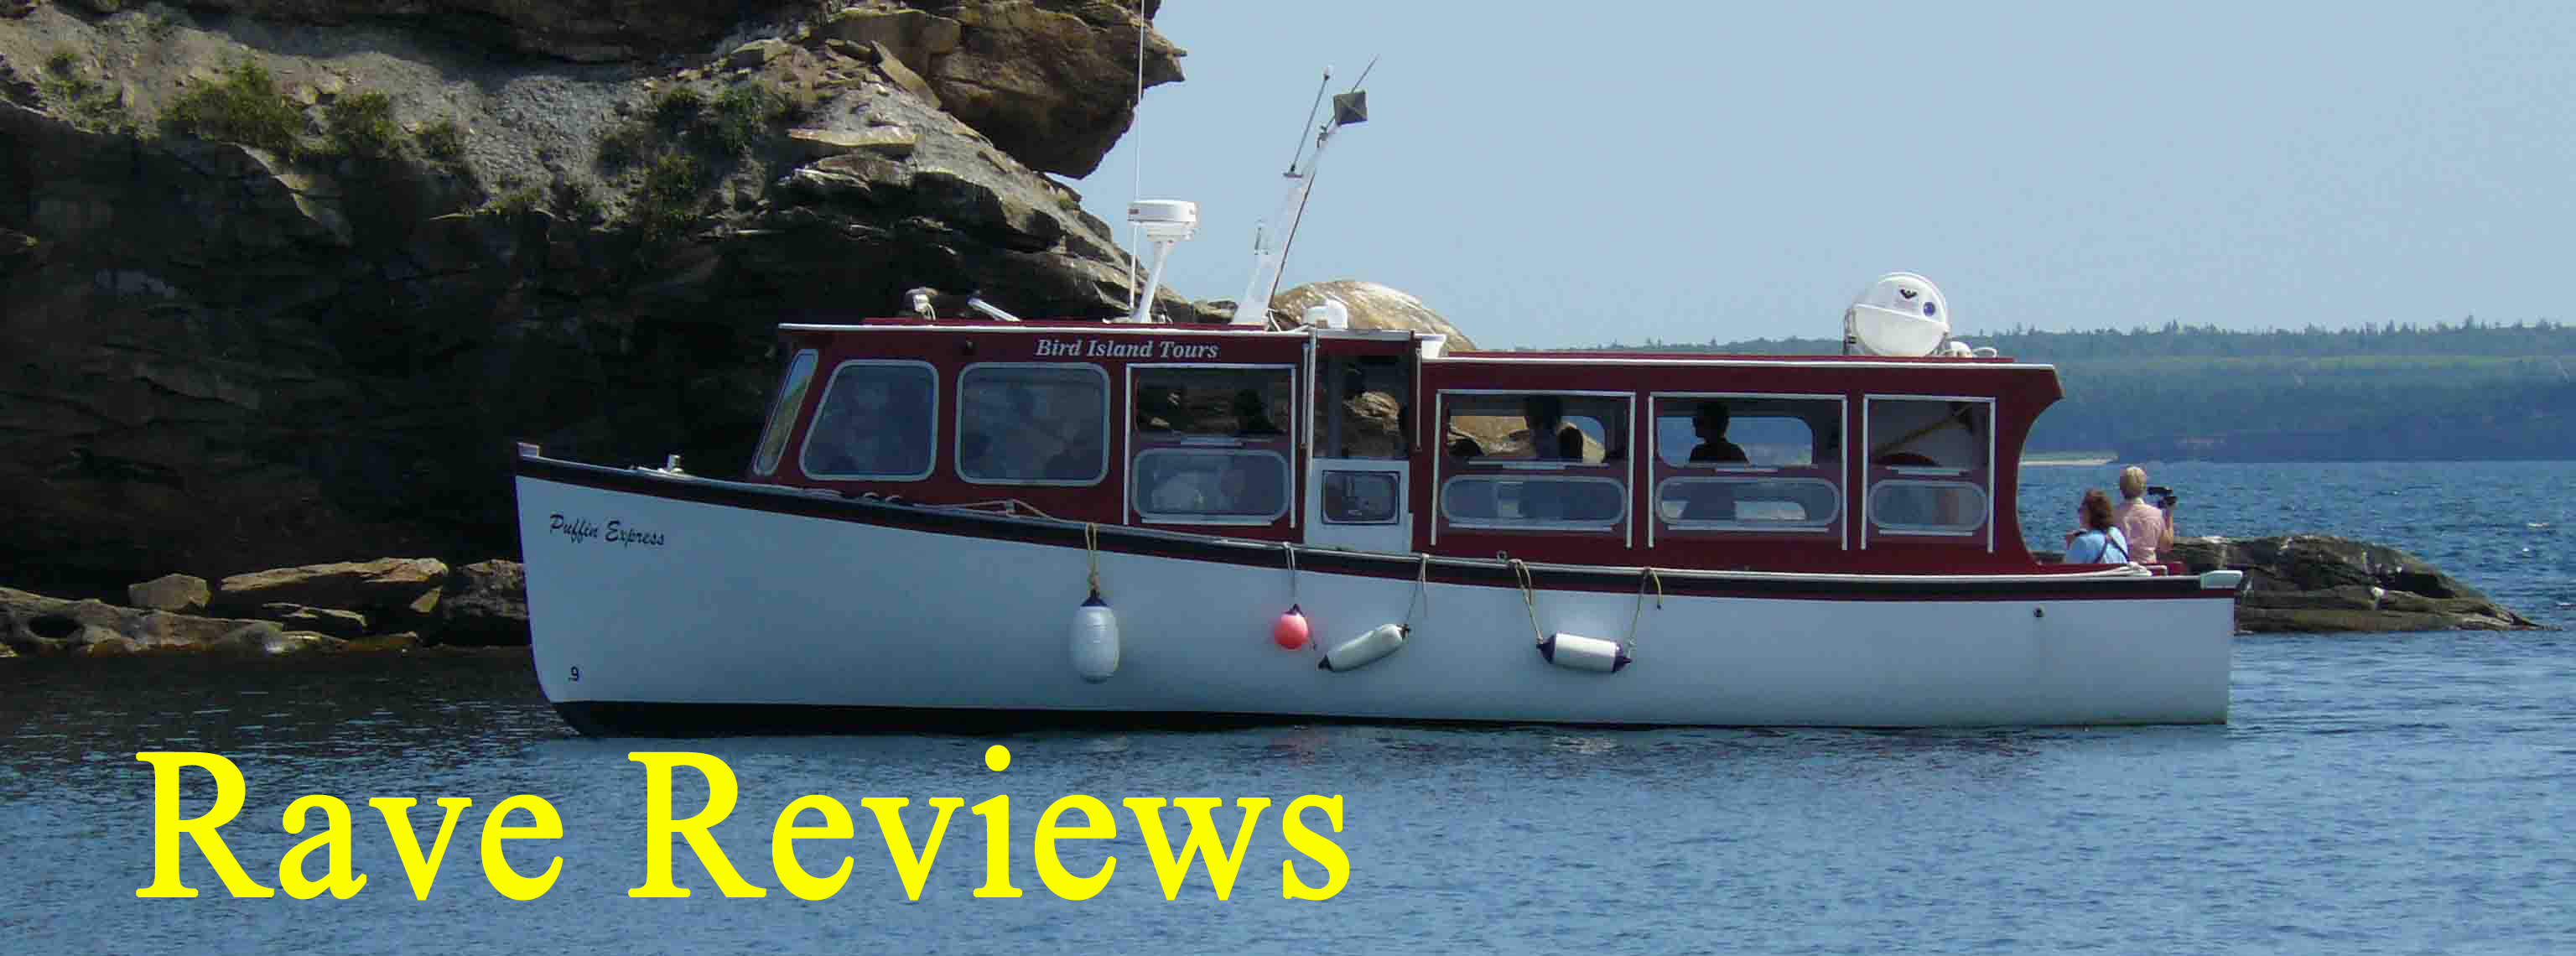 Our Boat the Puffin Express at the islands & our Rave Reviews